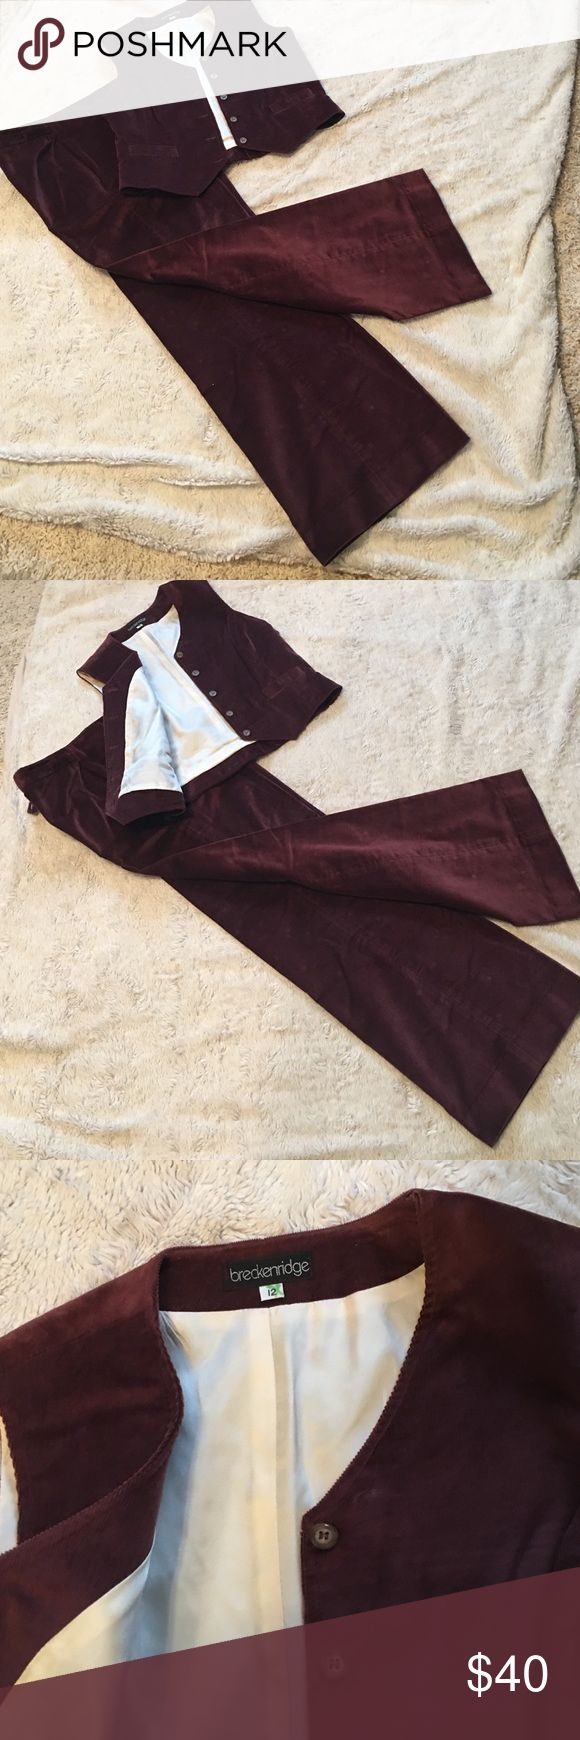 NWOT. Matching soft corduroy vest and pants Breckenridge two piece set.  Vest is lined.  Soft corduroy perfect for work or a semi casual night out. breckenridge Other